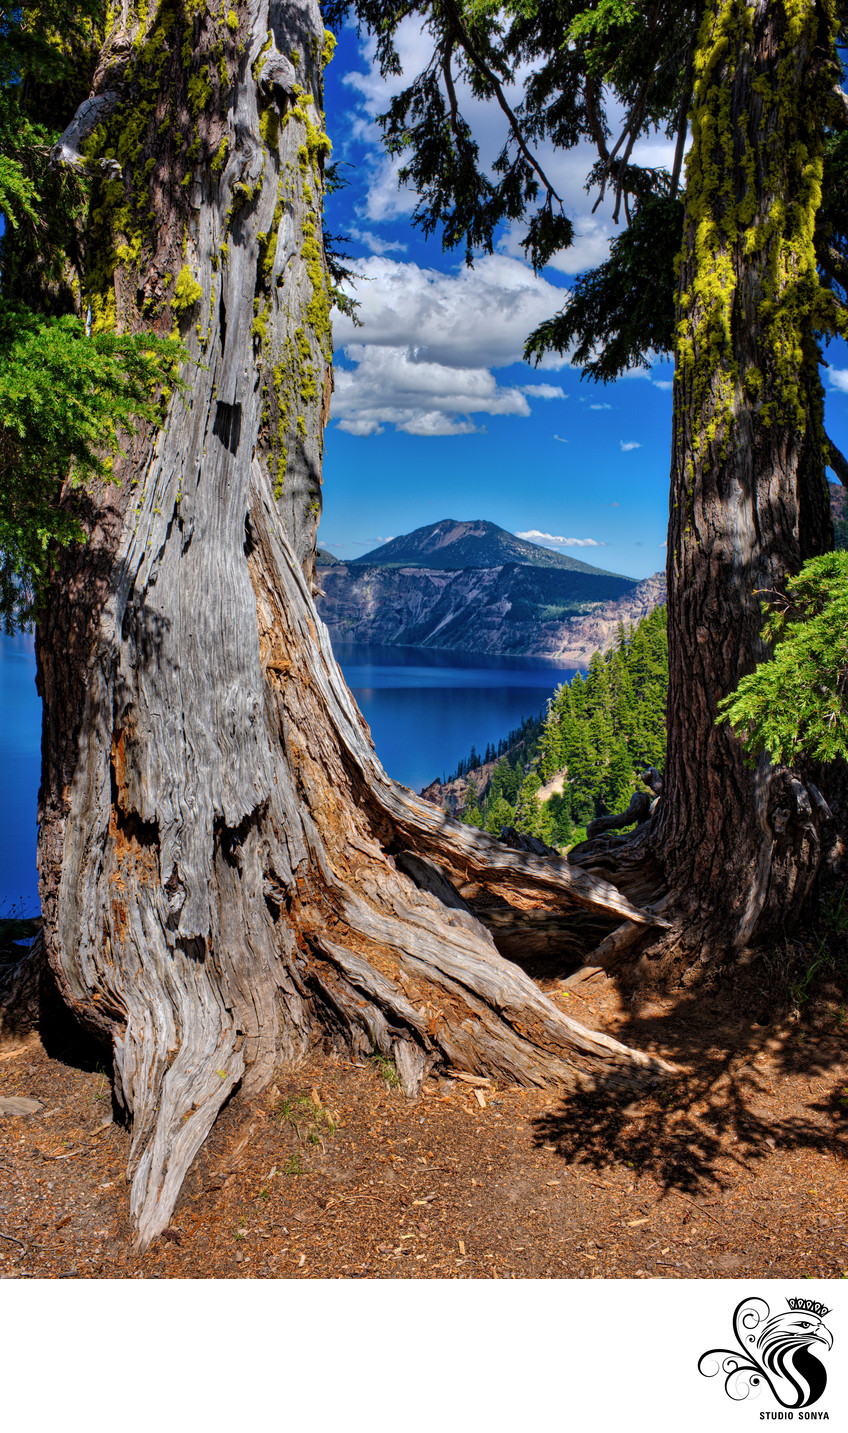 Peekaboo with Crater Lake